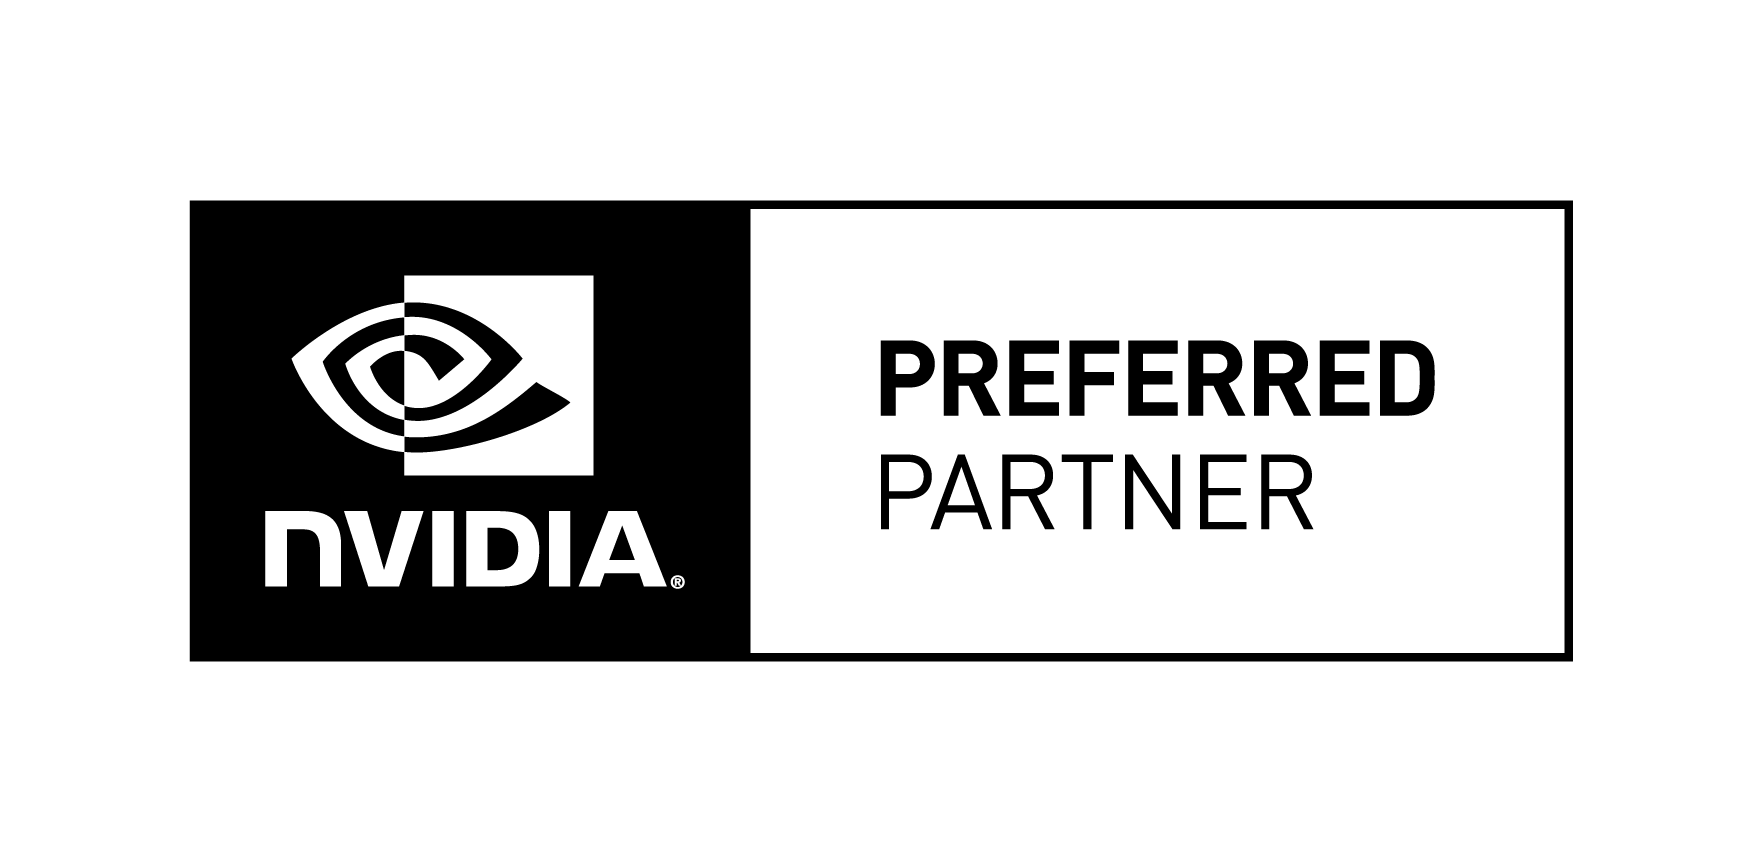 ewerk-NVIDIA-Preferred-Partner-ForWhiteBackgrounds